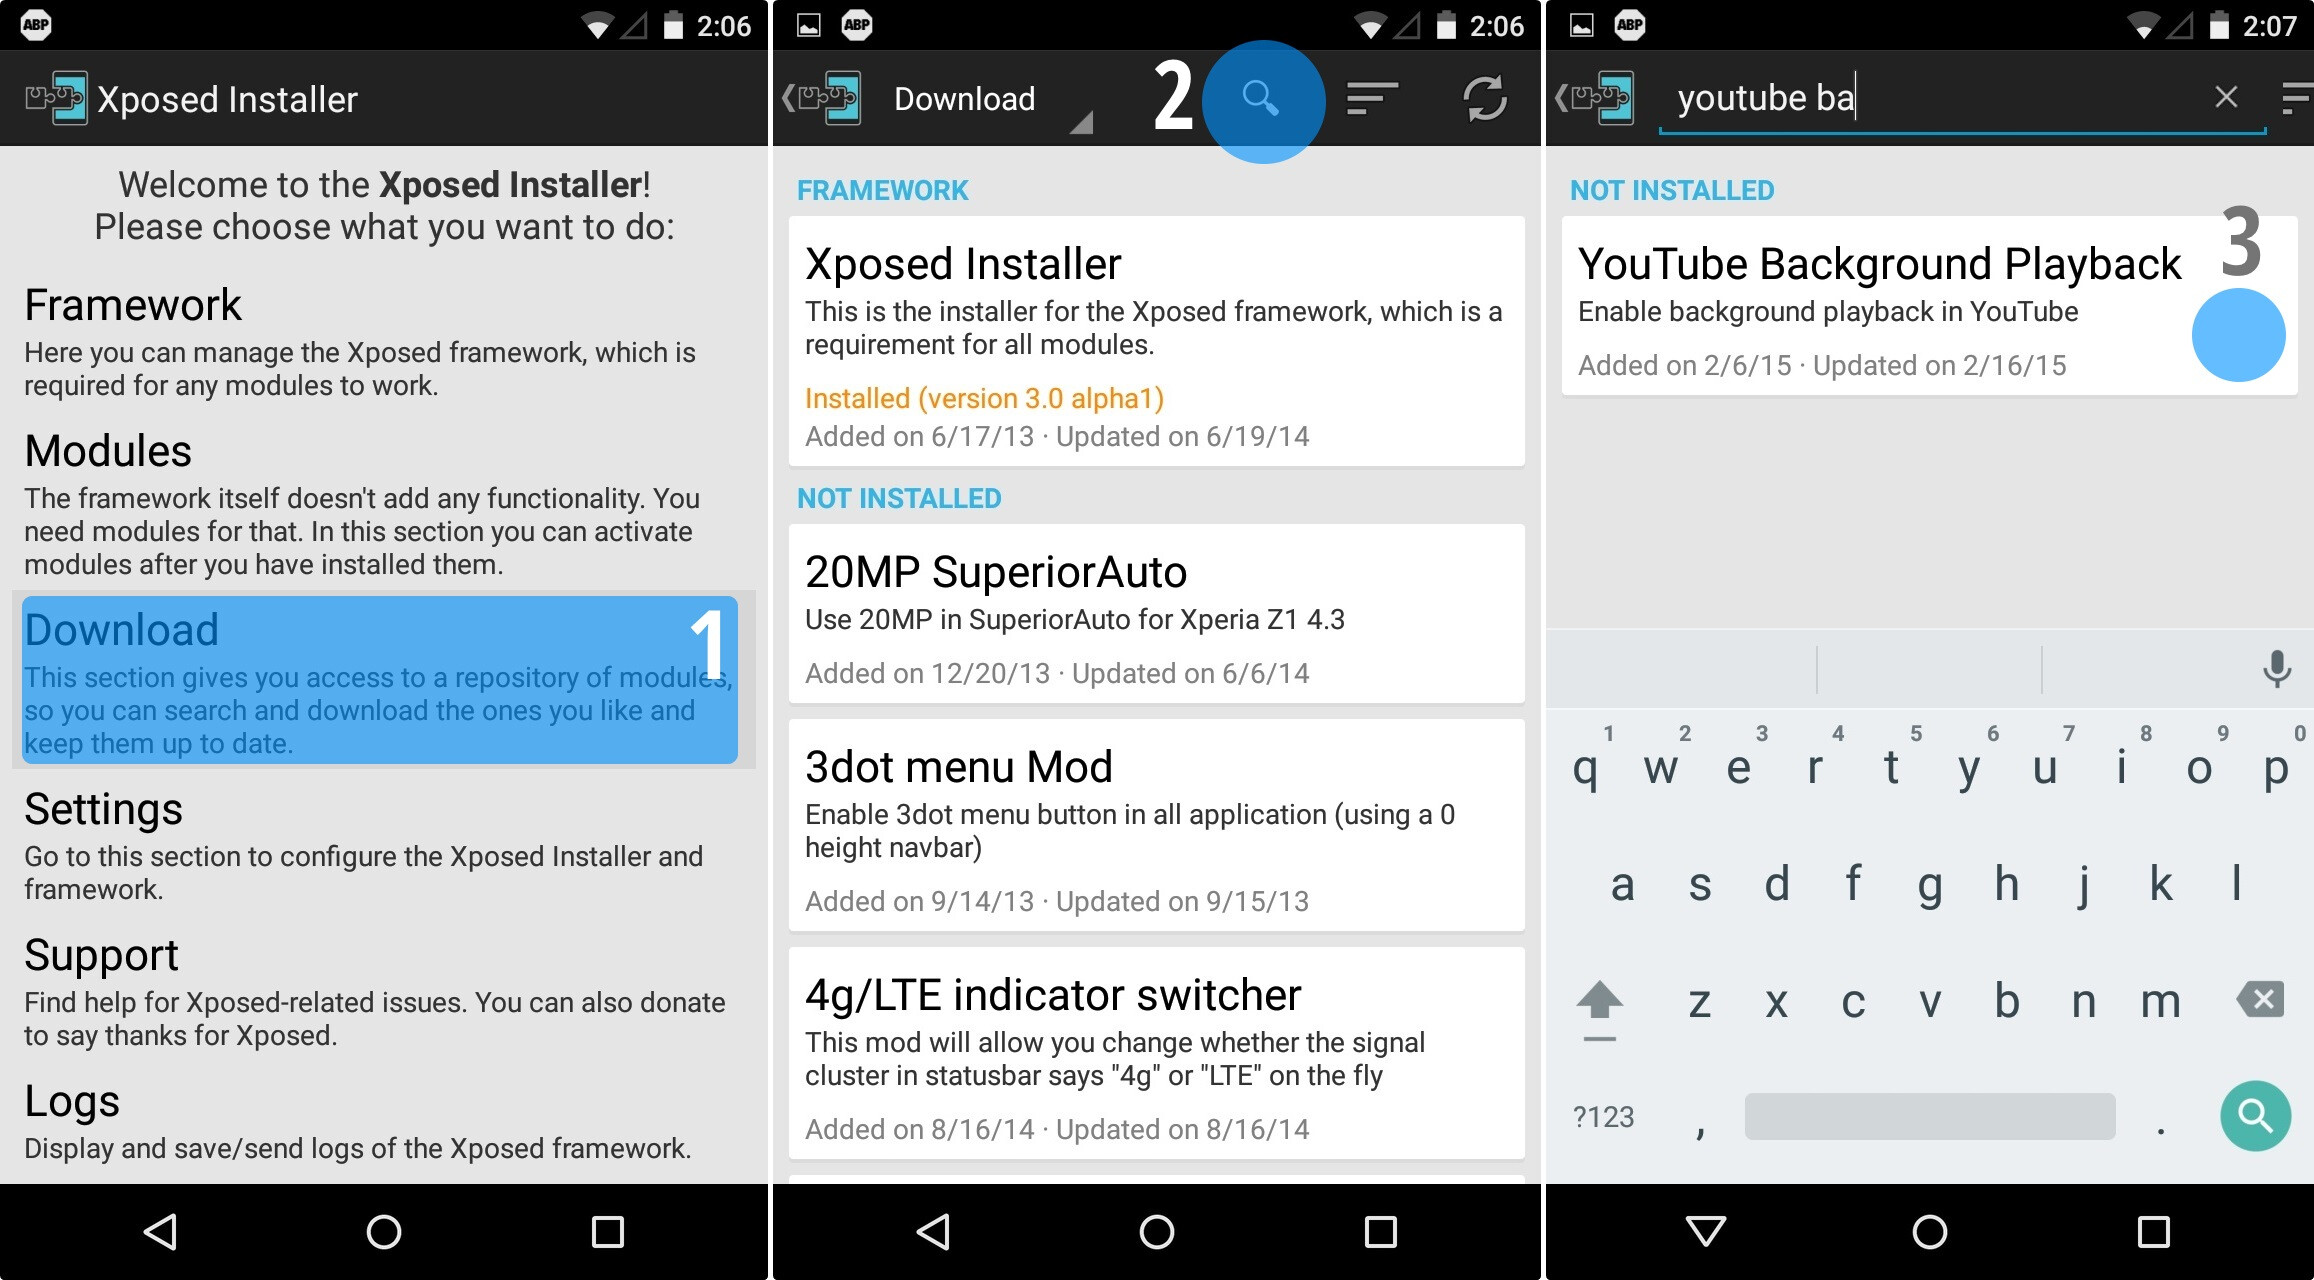 How to play YouTube videos & music in the background on Android